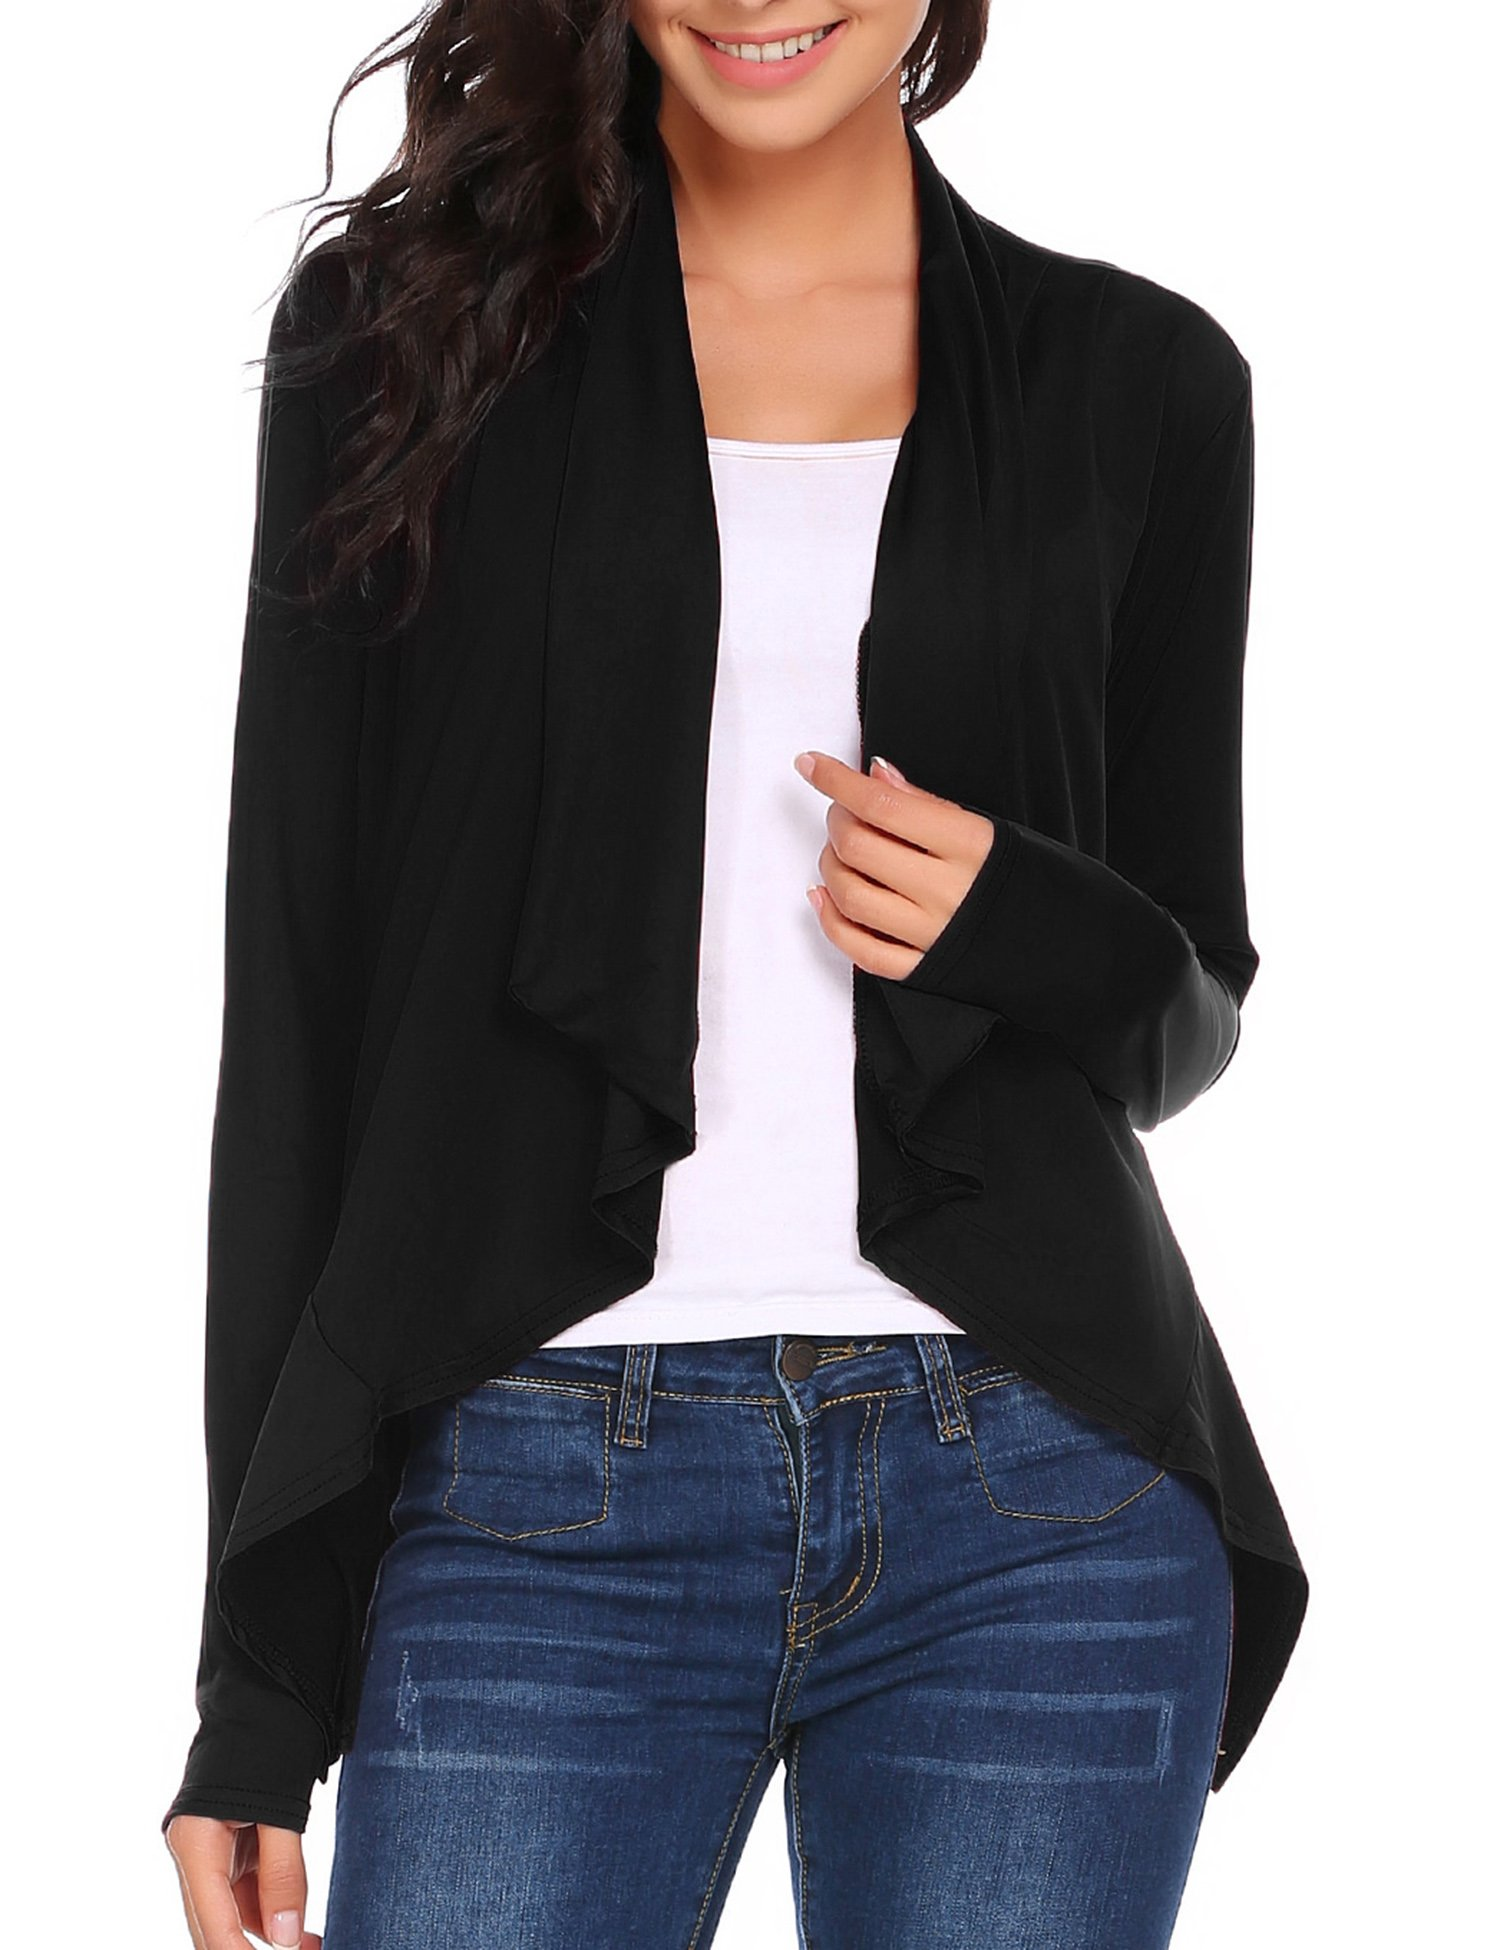 SE MIU Women's Long Sleeve Solid Ruched Open Front Casual Work Office Cardigan Coat Tops